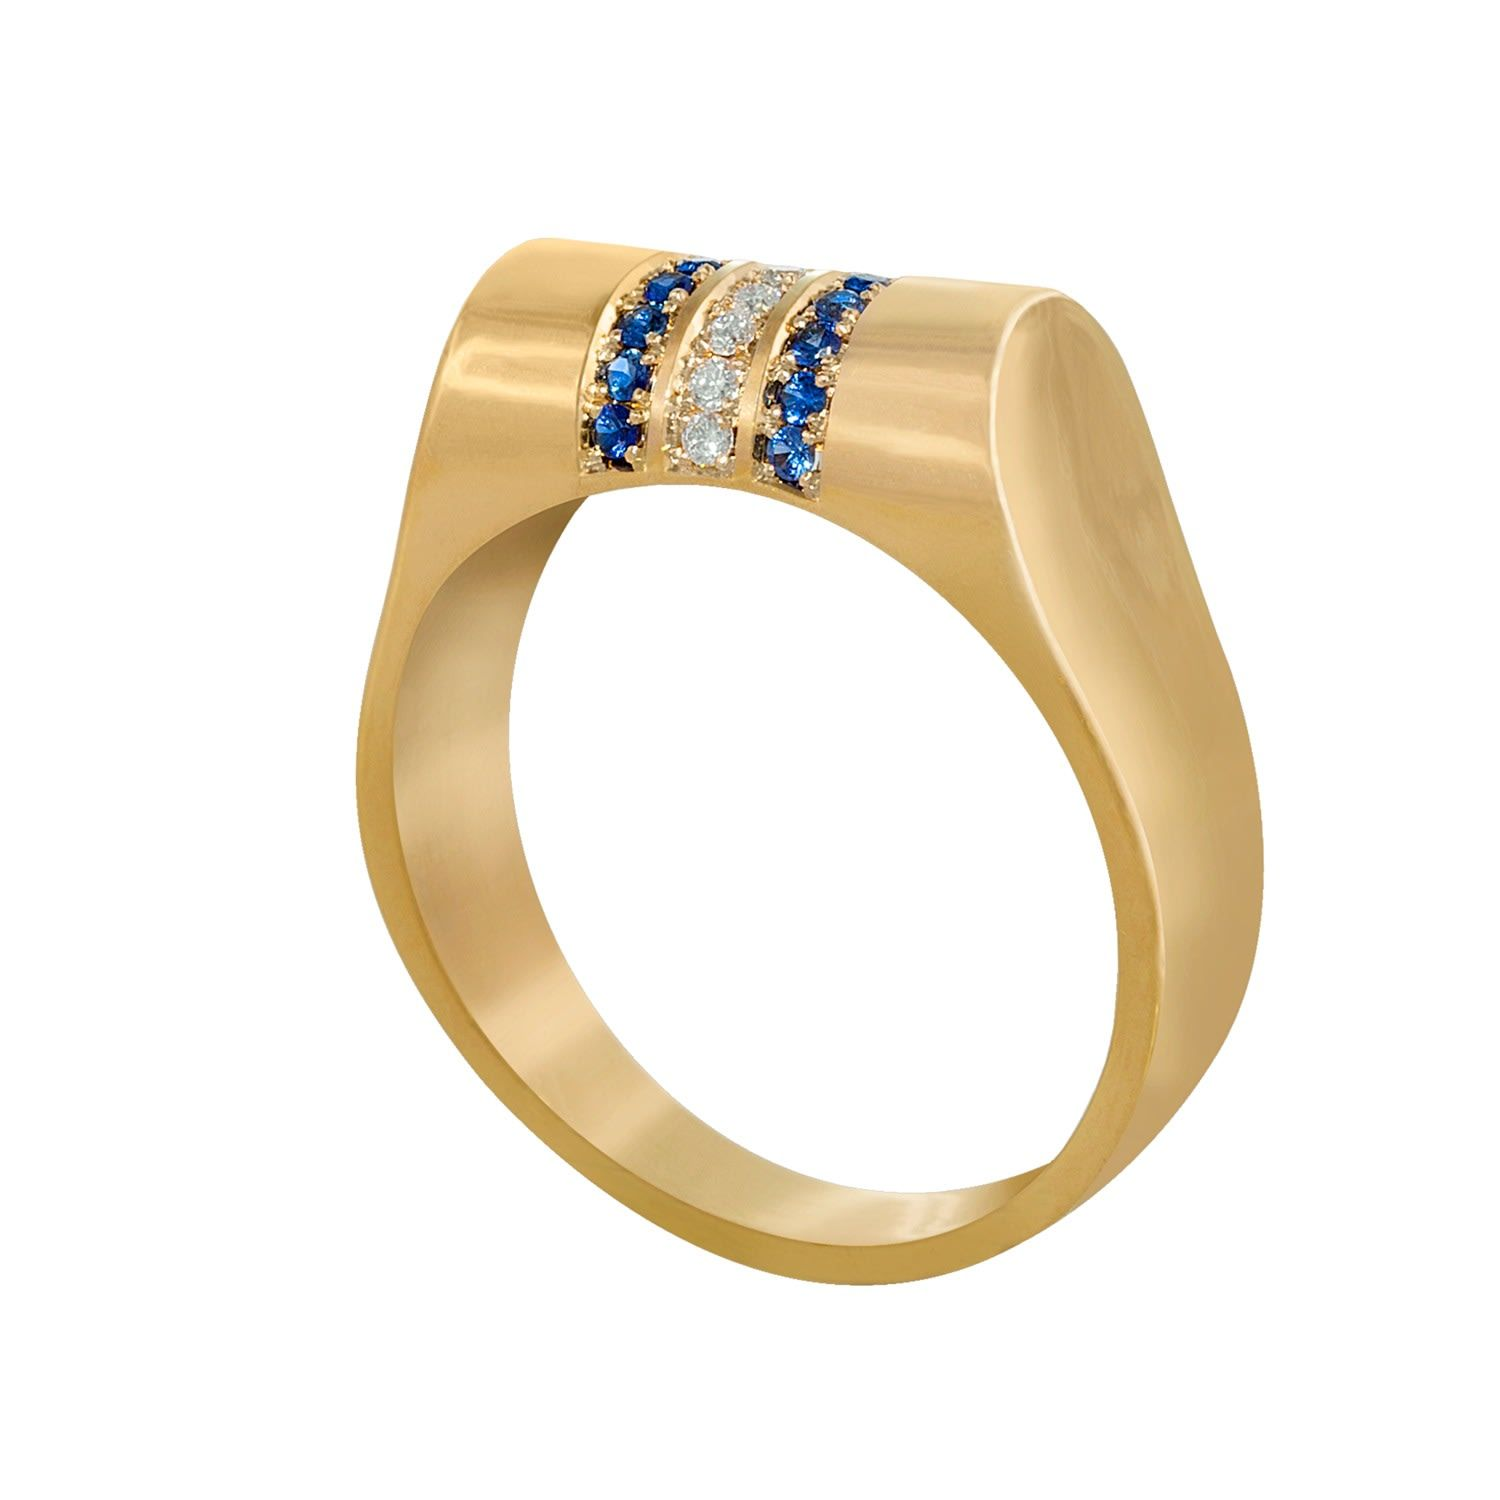 21++ Best place to buy gold jewelry in nyc ideas